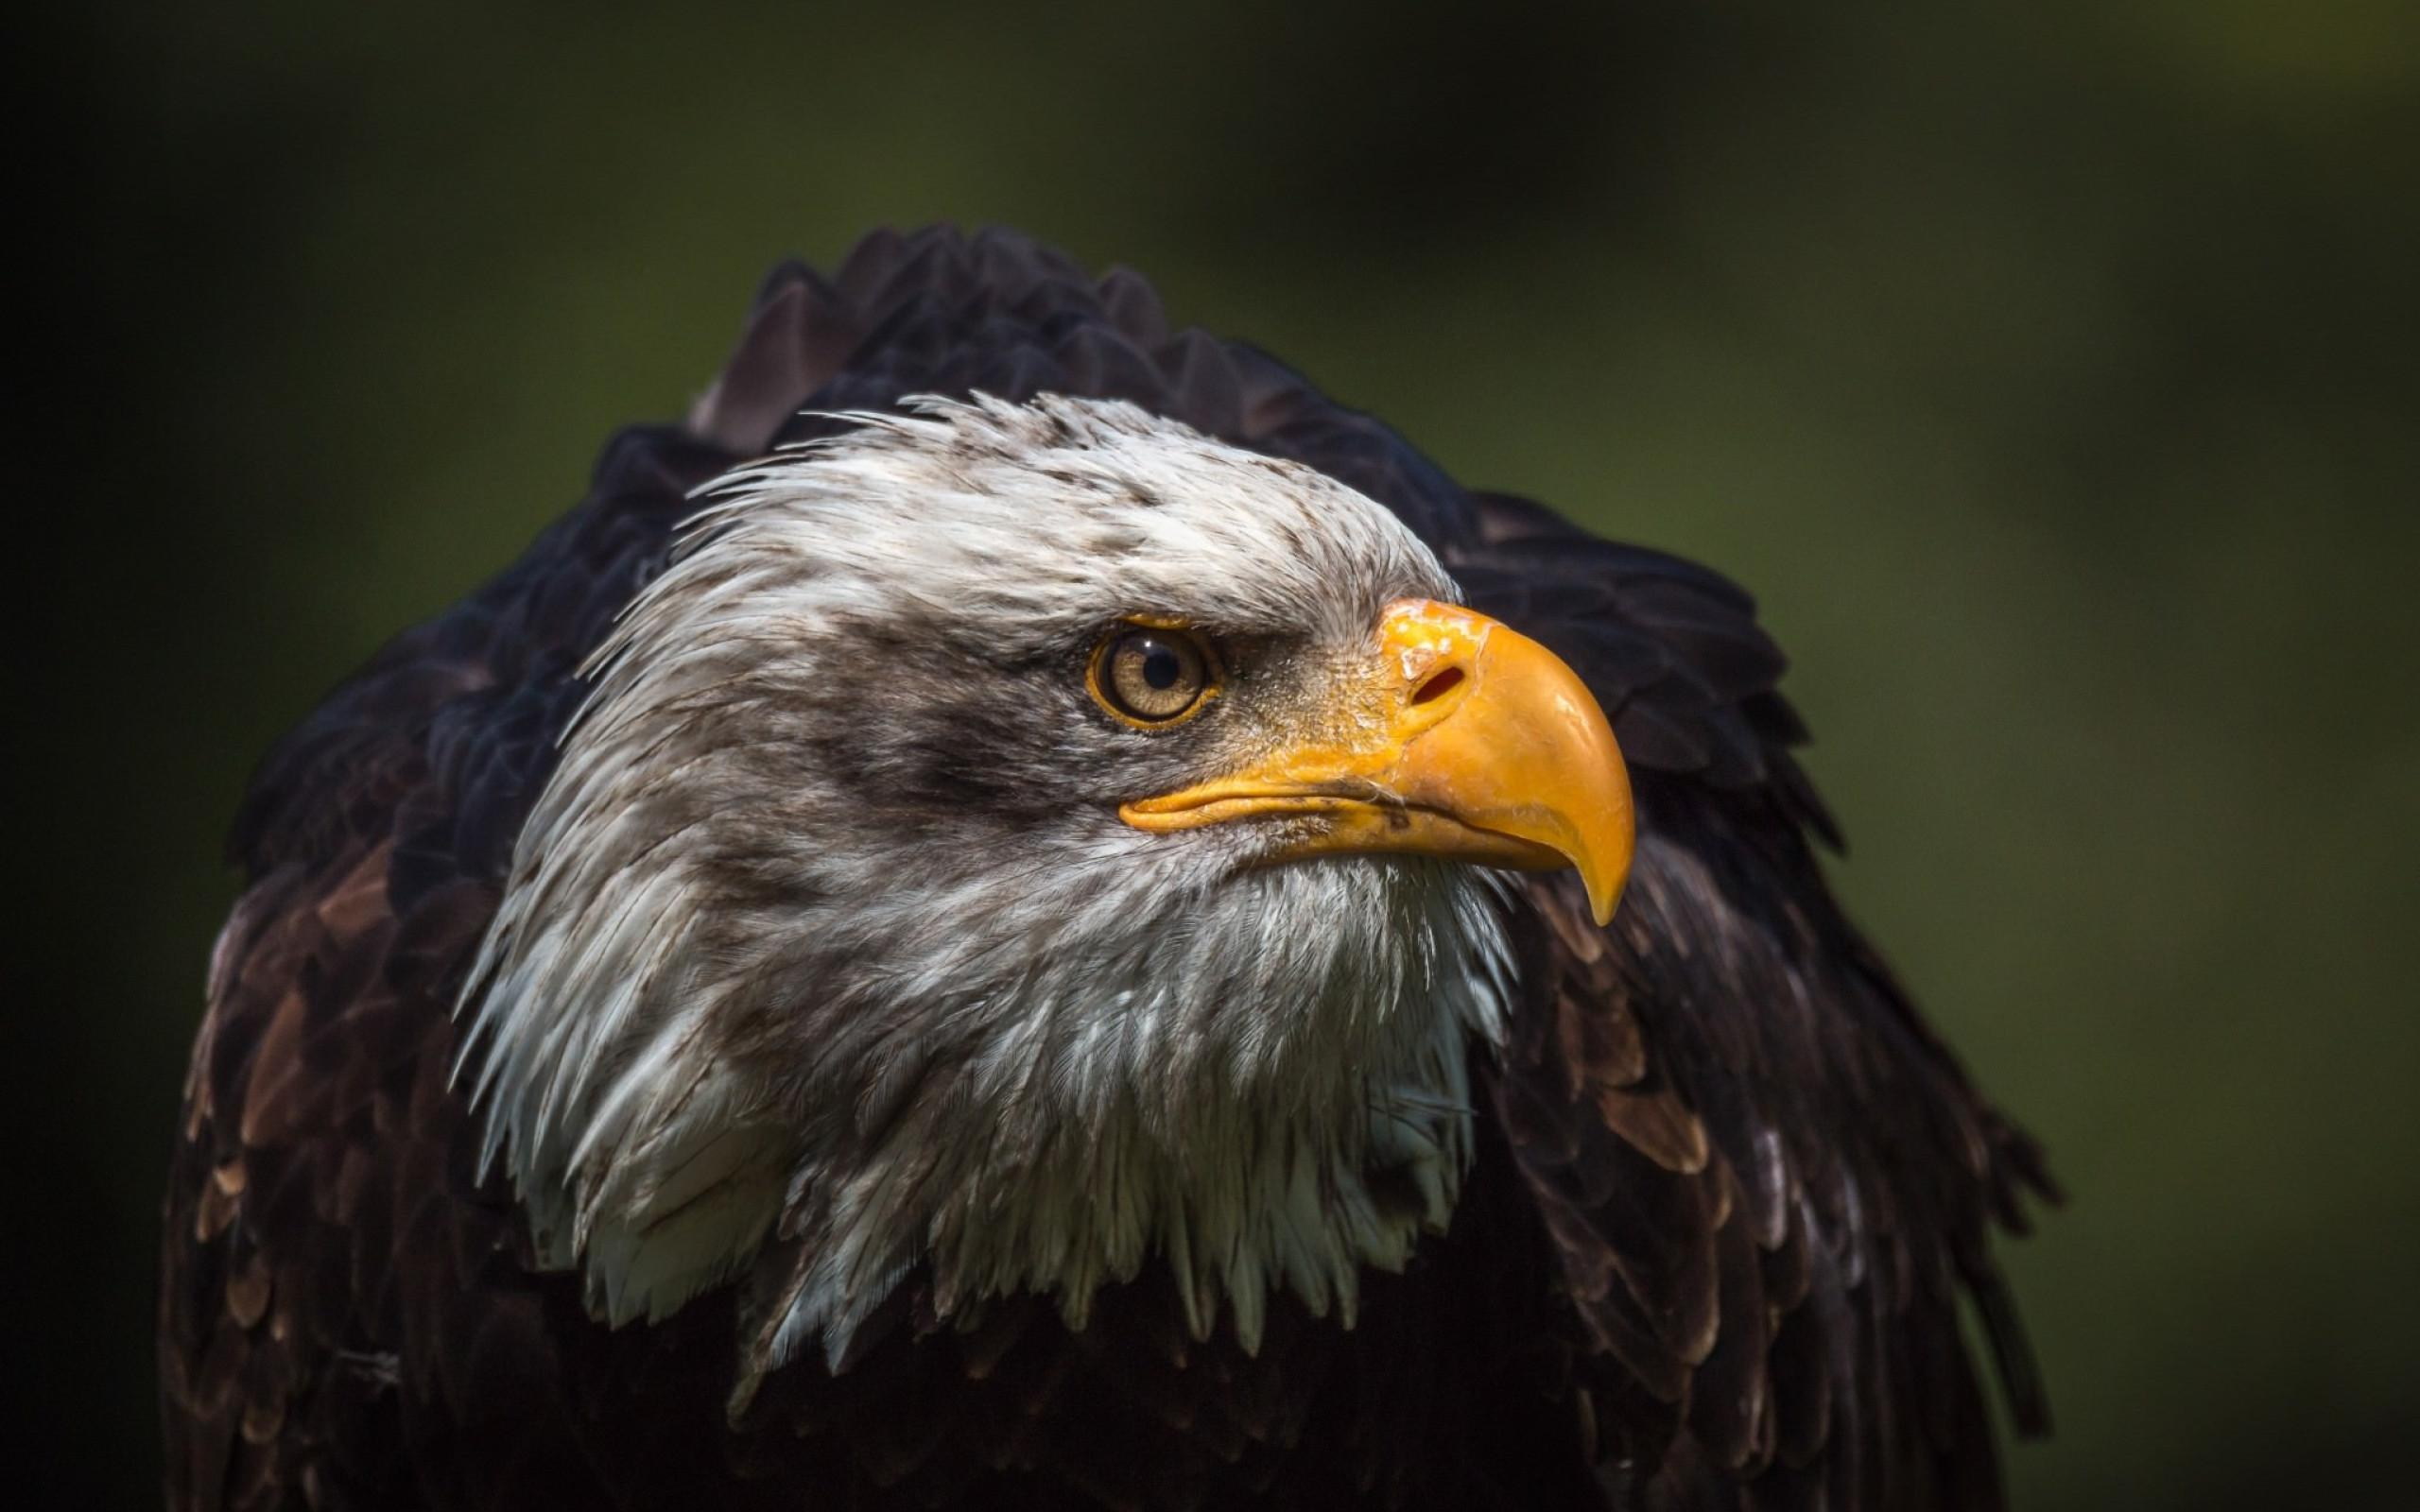 Eagle Wallpaper Pictures Hd Images Free Photos 4k For Android Apk Download